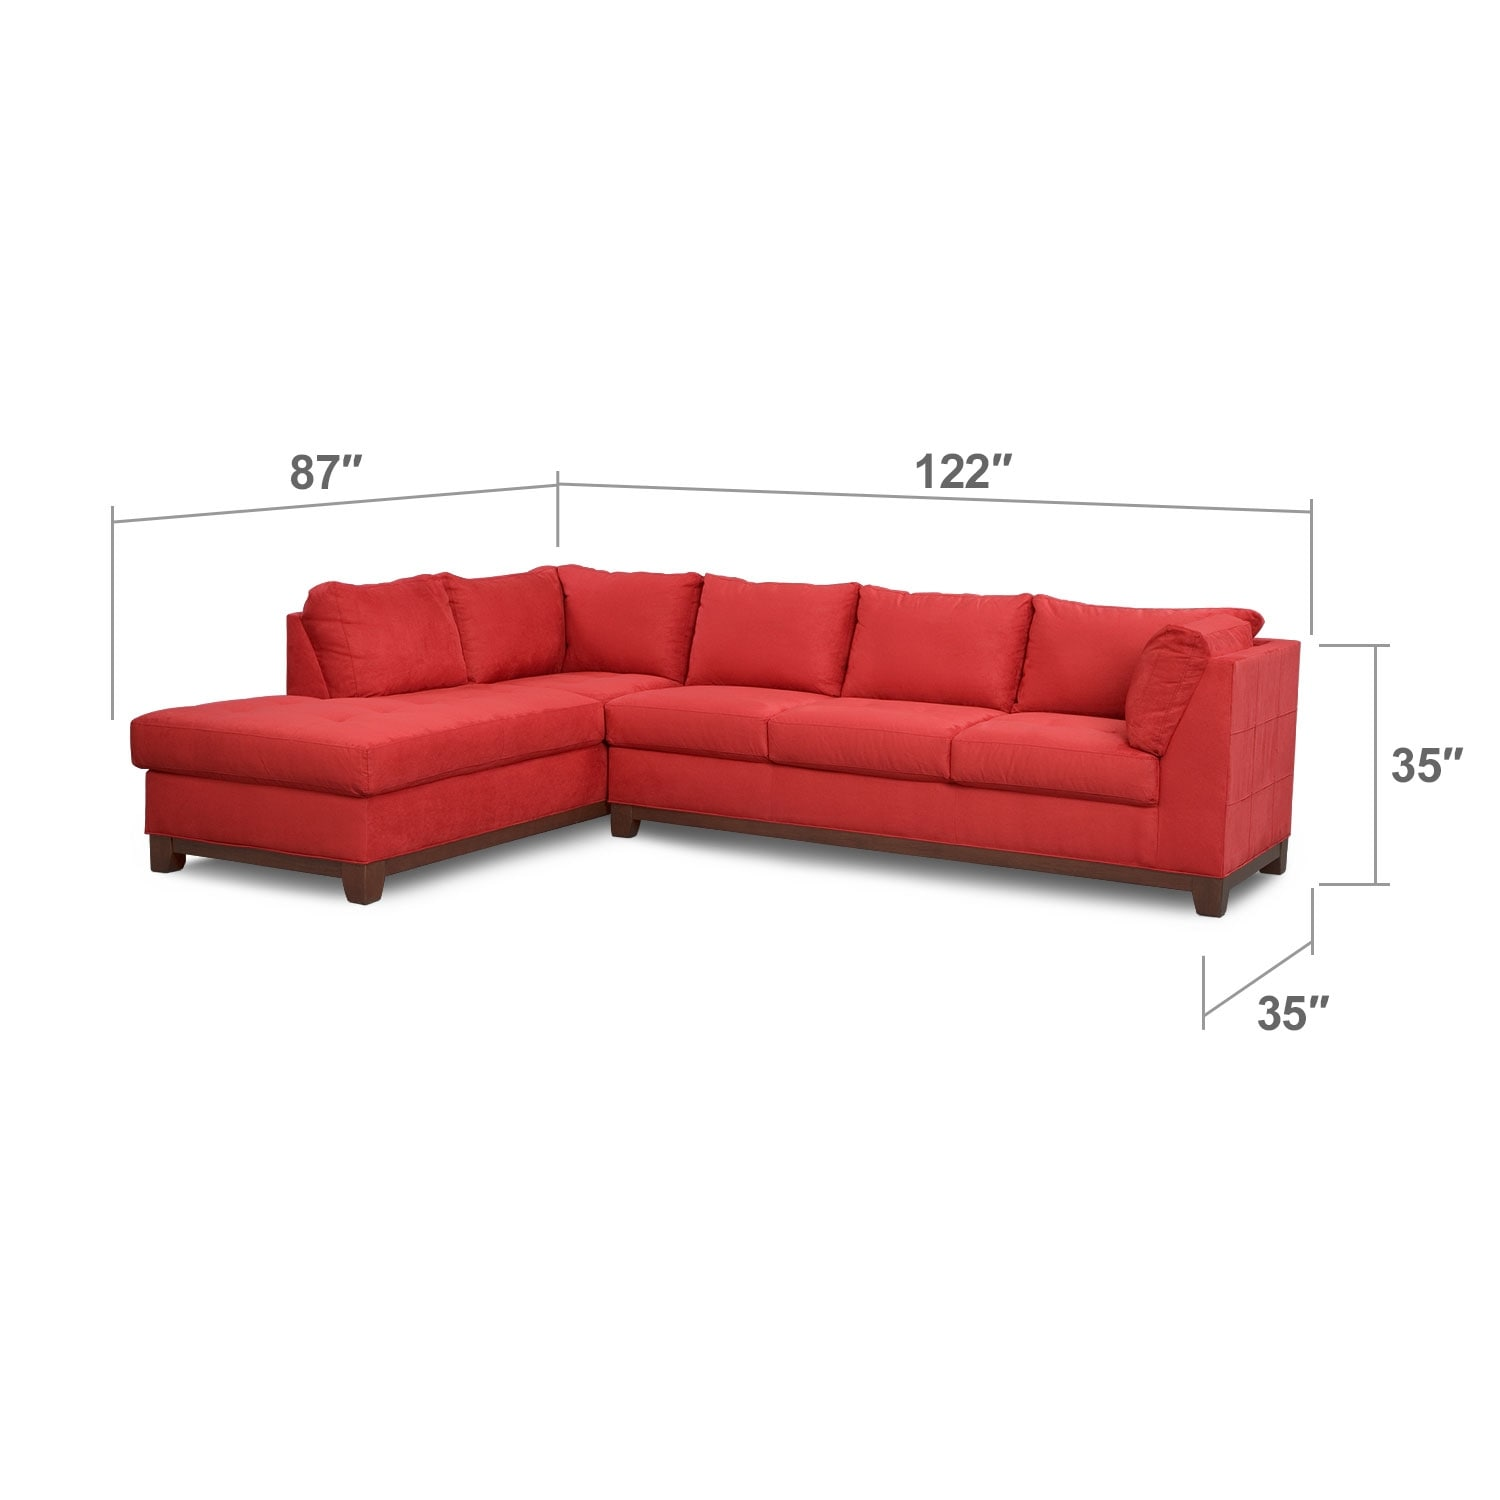 Living Room Furniture - Soho 2 Pc. Sectional (Reverse)